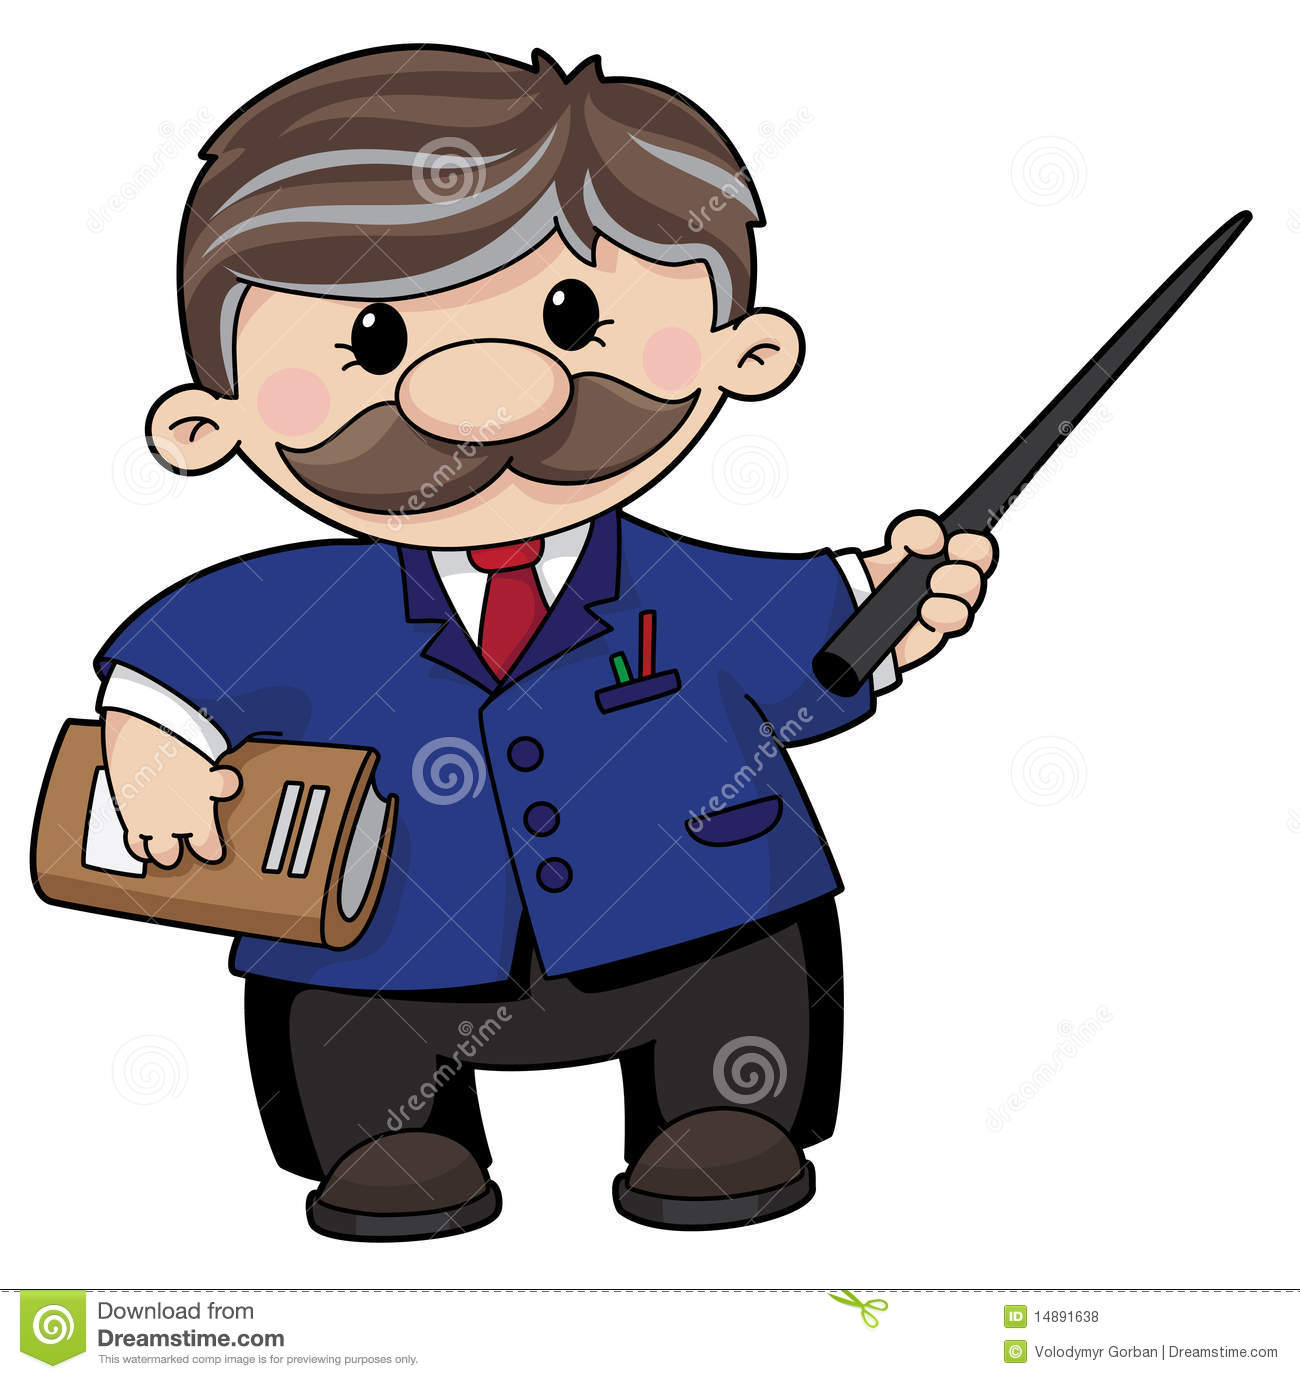 Cartoon Male Teacher Stock Photos, Images, & Pictures - 2,668 Images